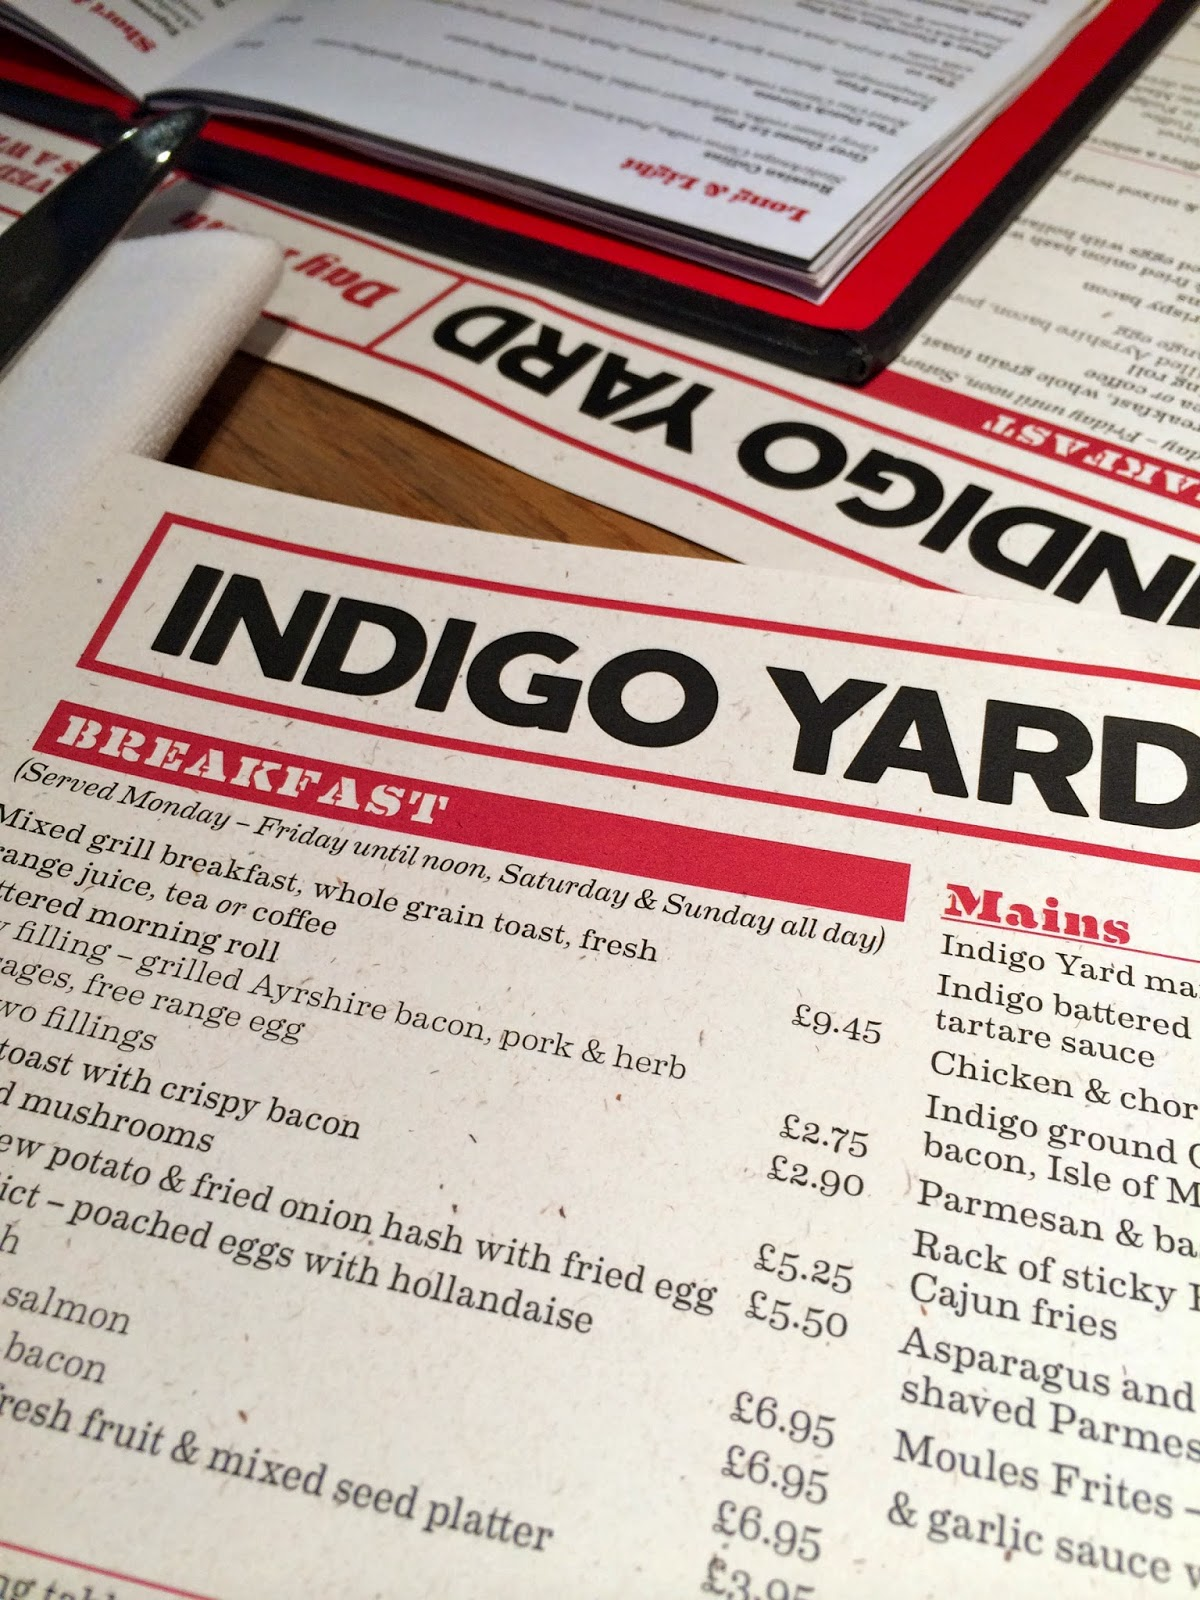 Indigo Yard Edinburgh